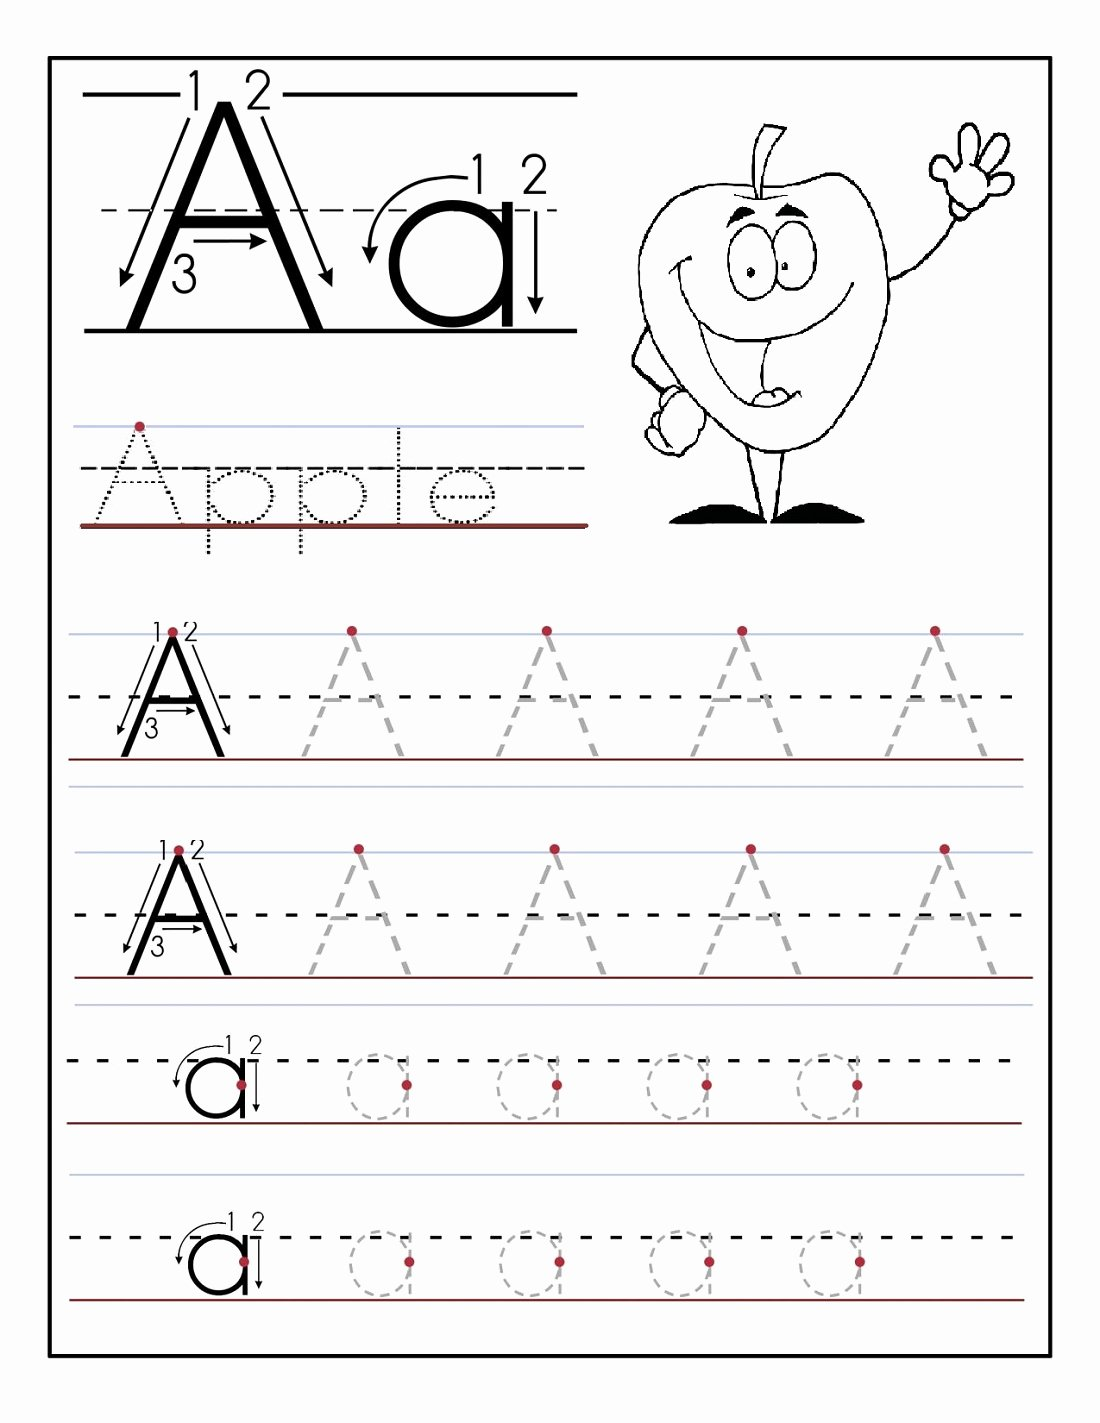 Alphabet Writing Worksheets for Preschoolers Lovely Worksheet Marvelous Alphabet Writing Worksheets for